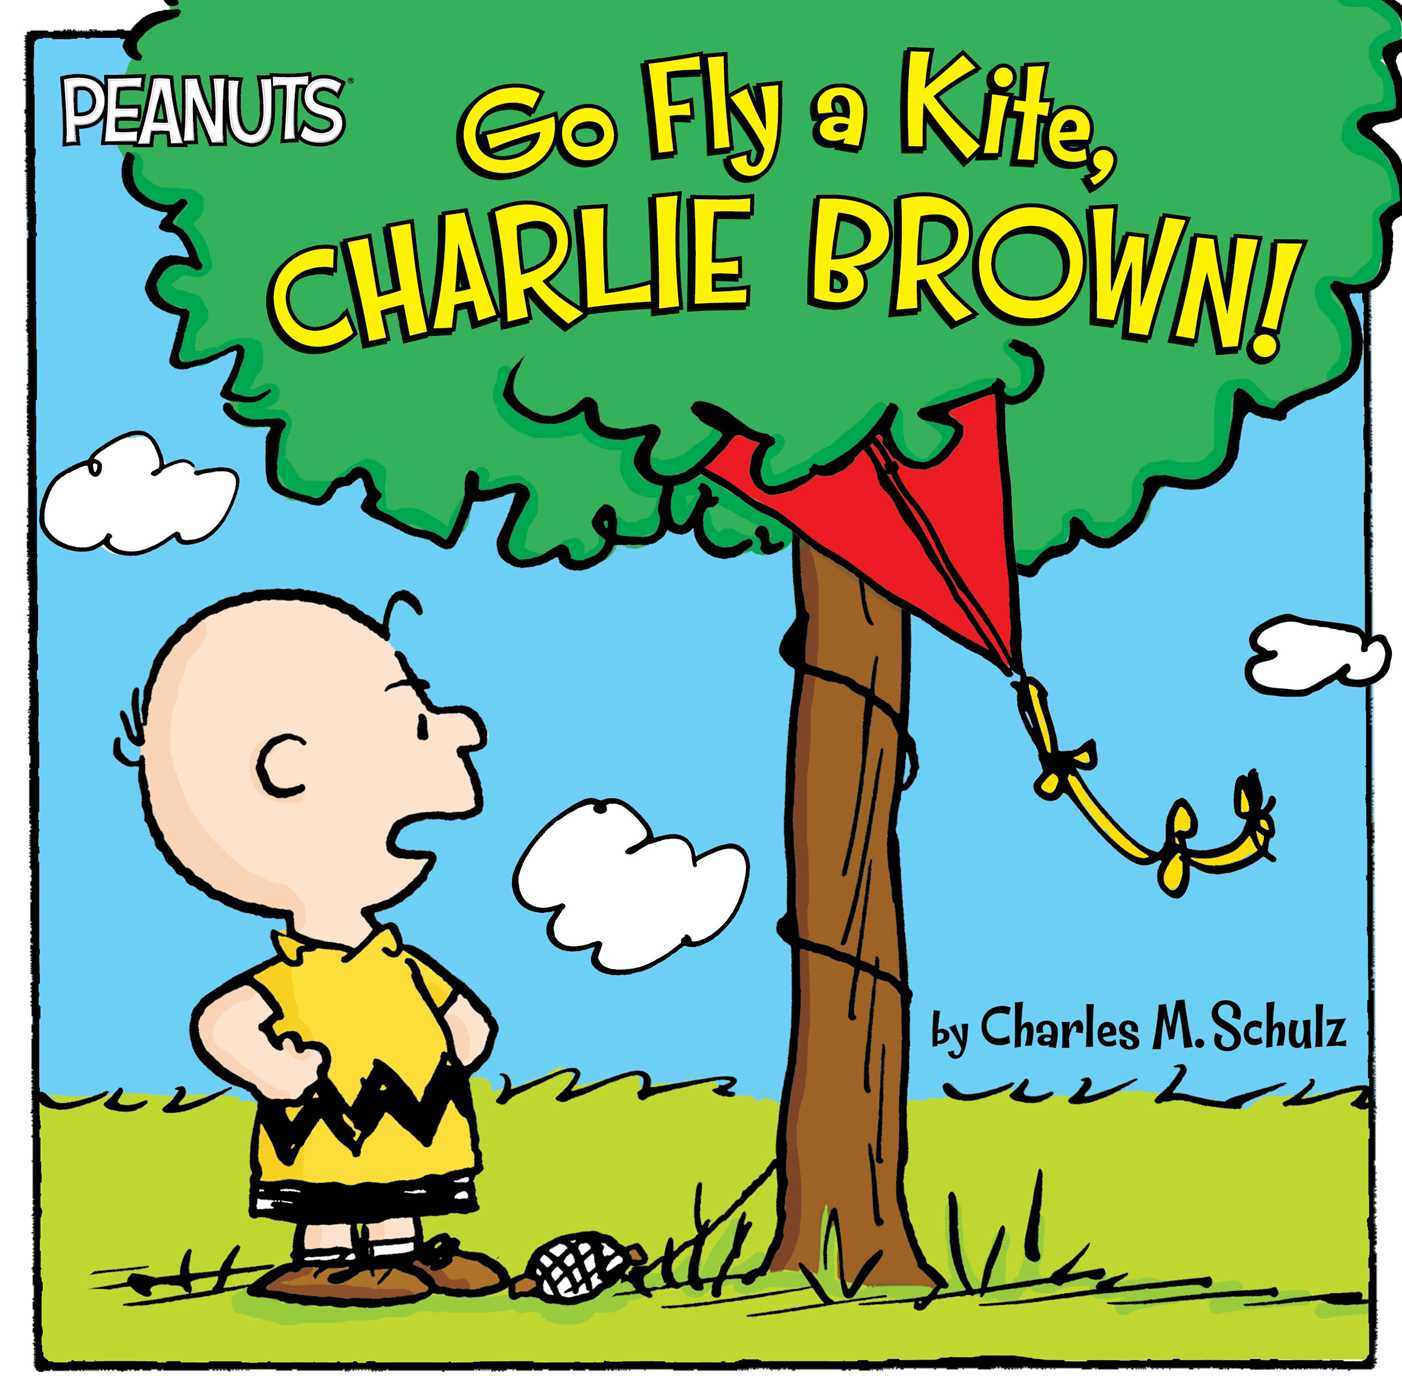 Go fly a kite charlie brown 9781481439558 hr